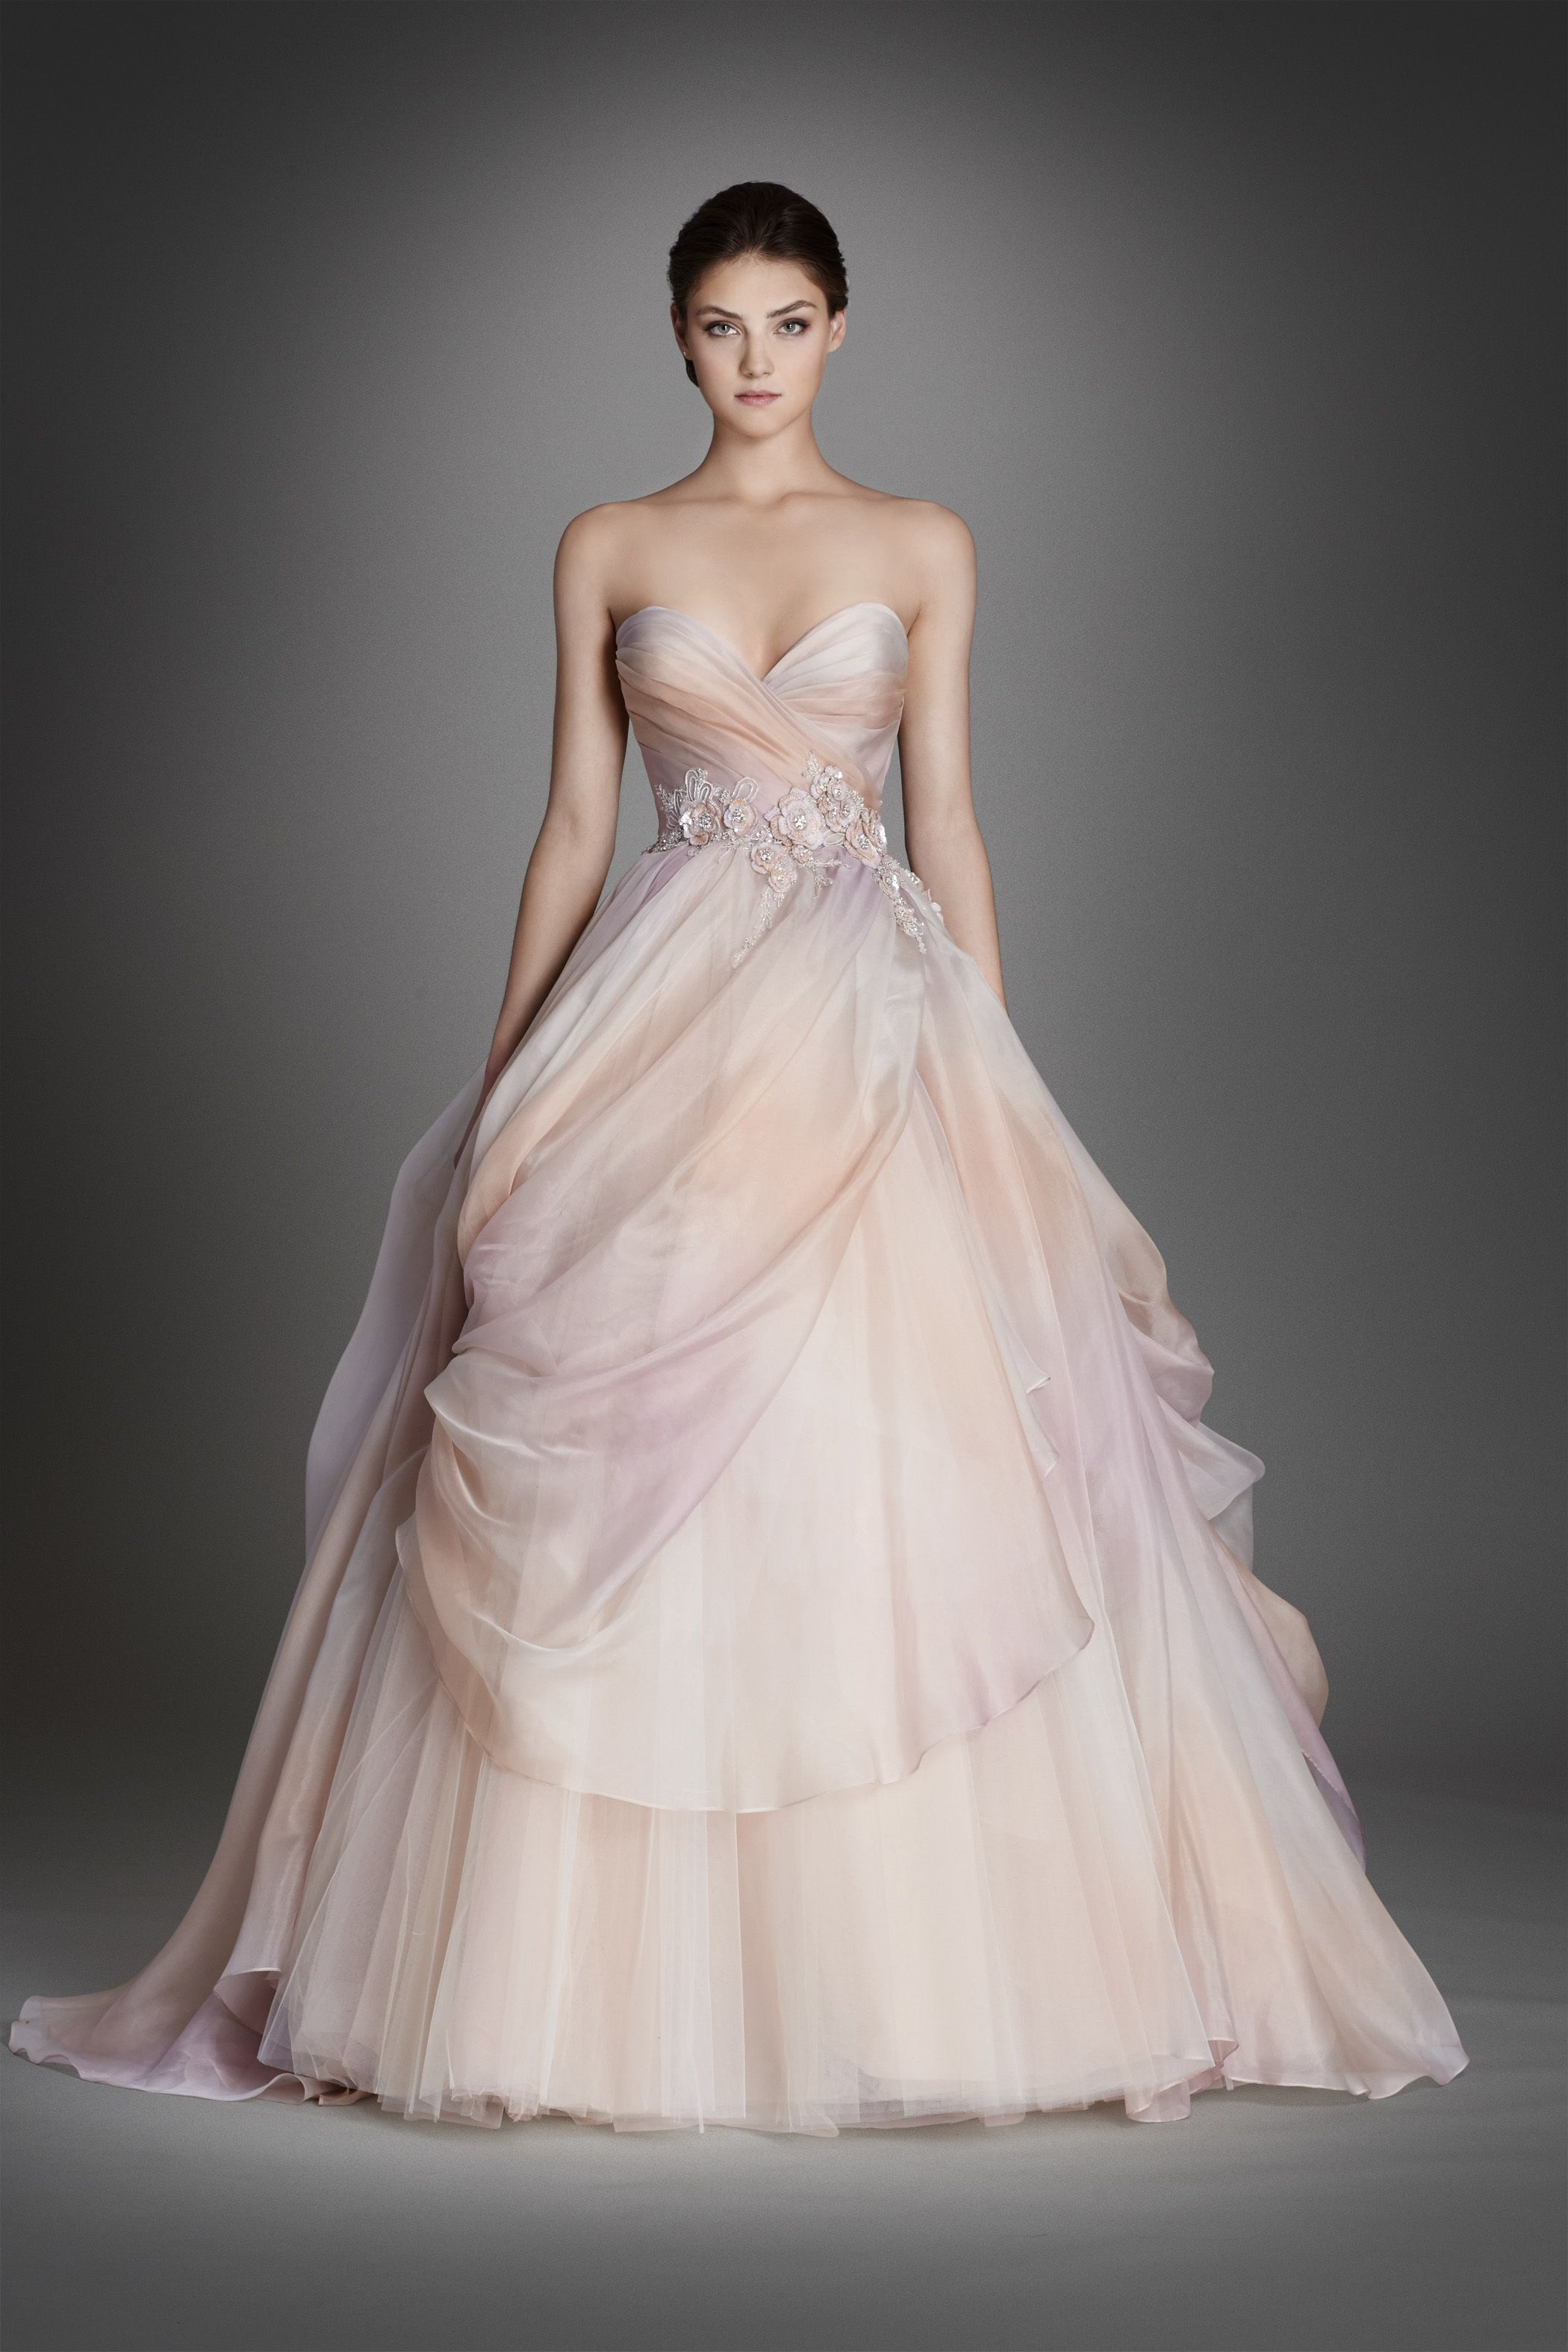 Lazaro Fall 2015 Collection at JLM Couture | College room ...